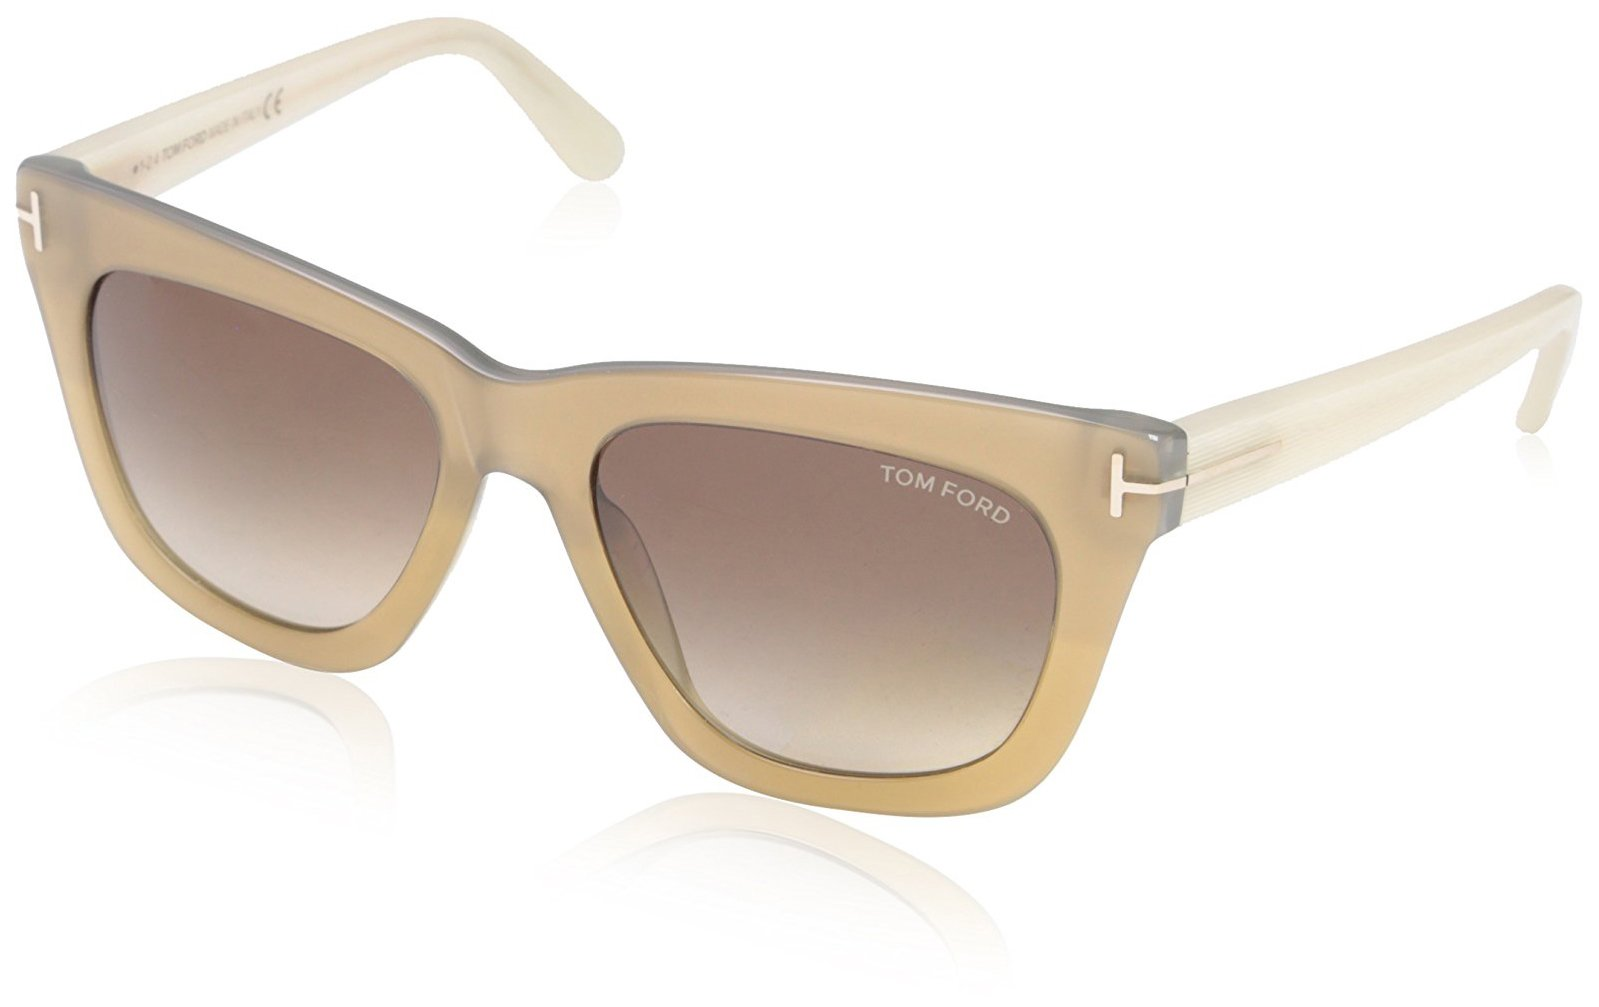 Tom Ford Women's TF361 Sunglasses, Shiny Light Bronze